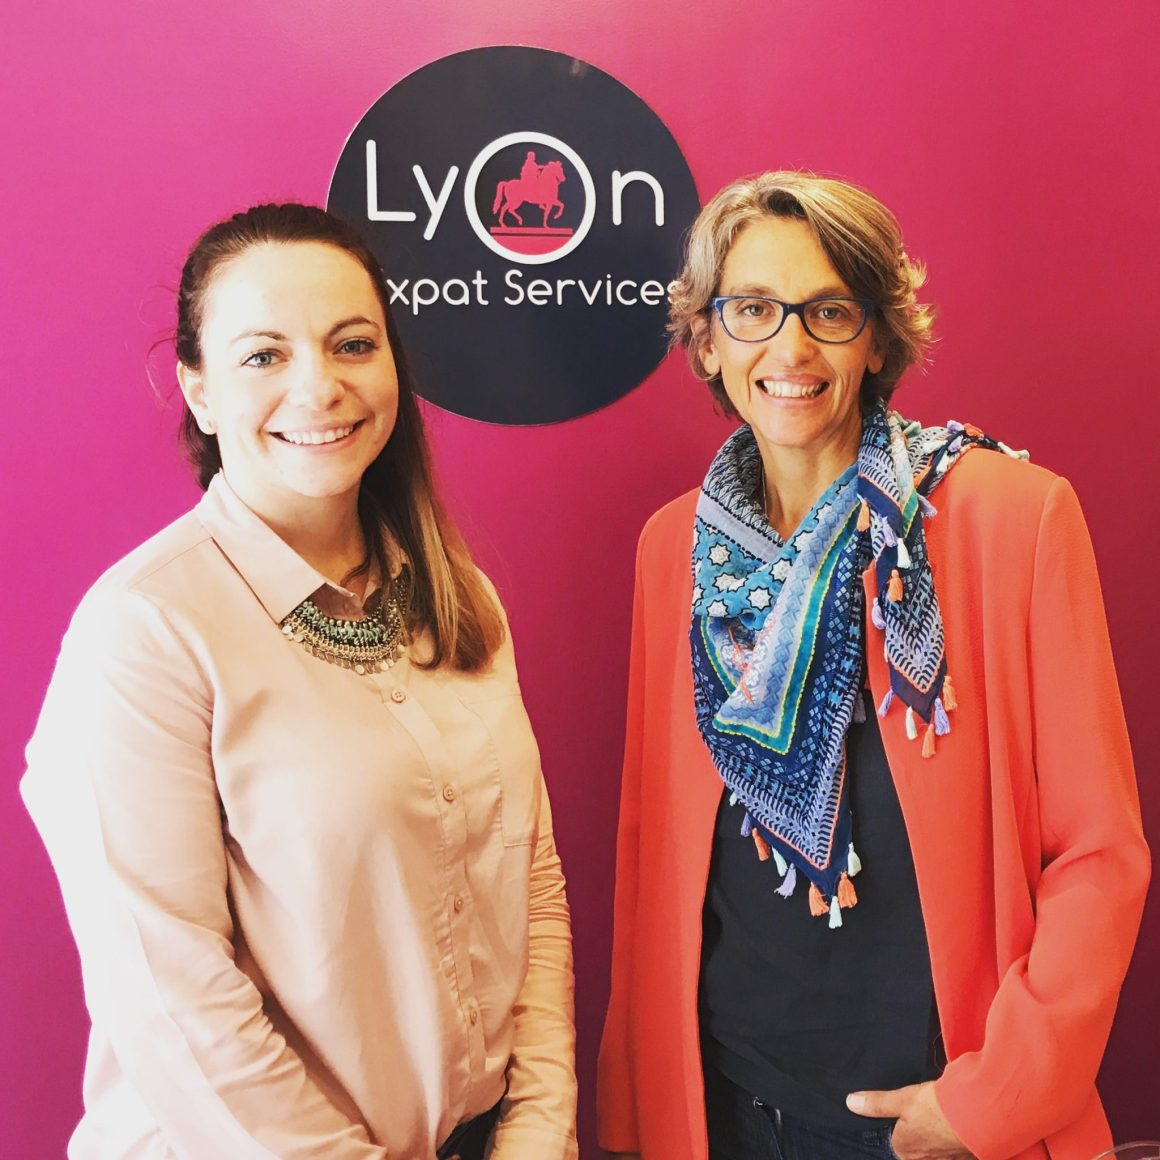 Sophie and Lindsey - The Lyon Expat Services Team